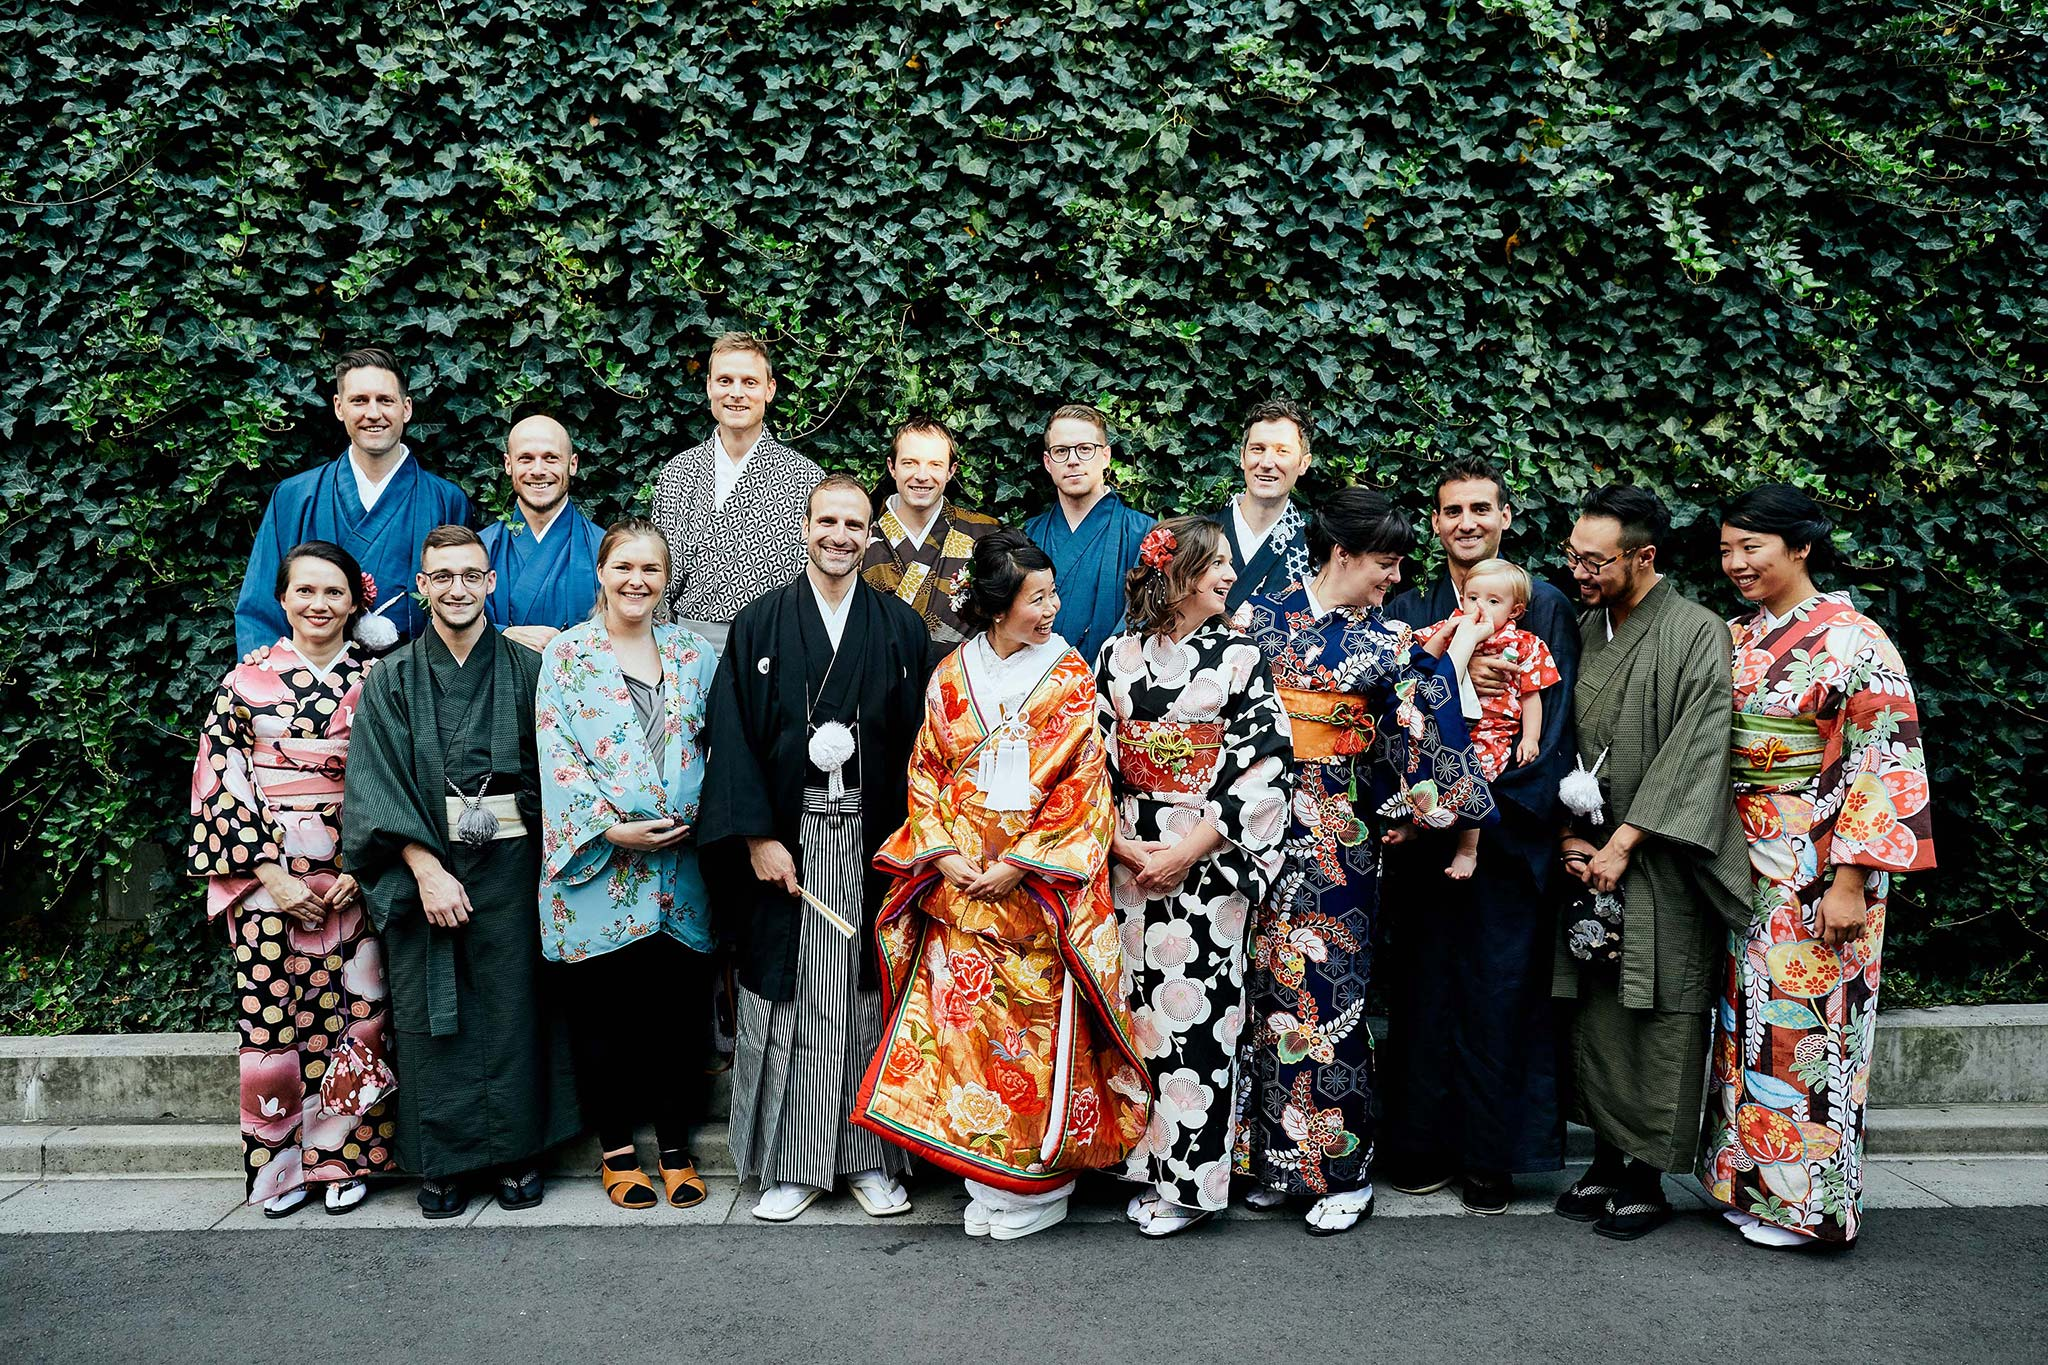 tokyo asakusa shrine traditional wedding group photo german